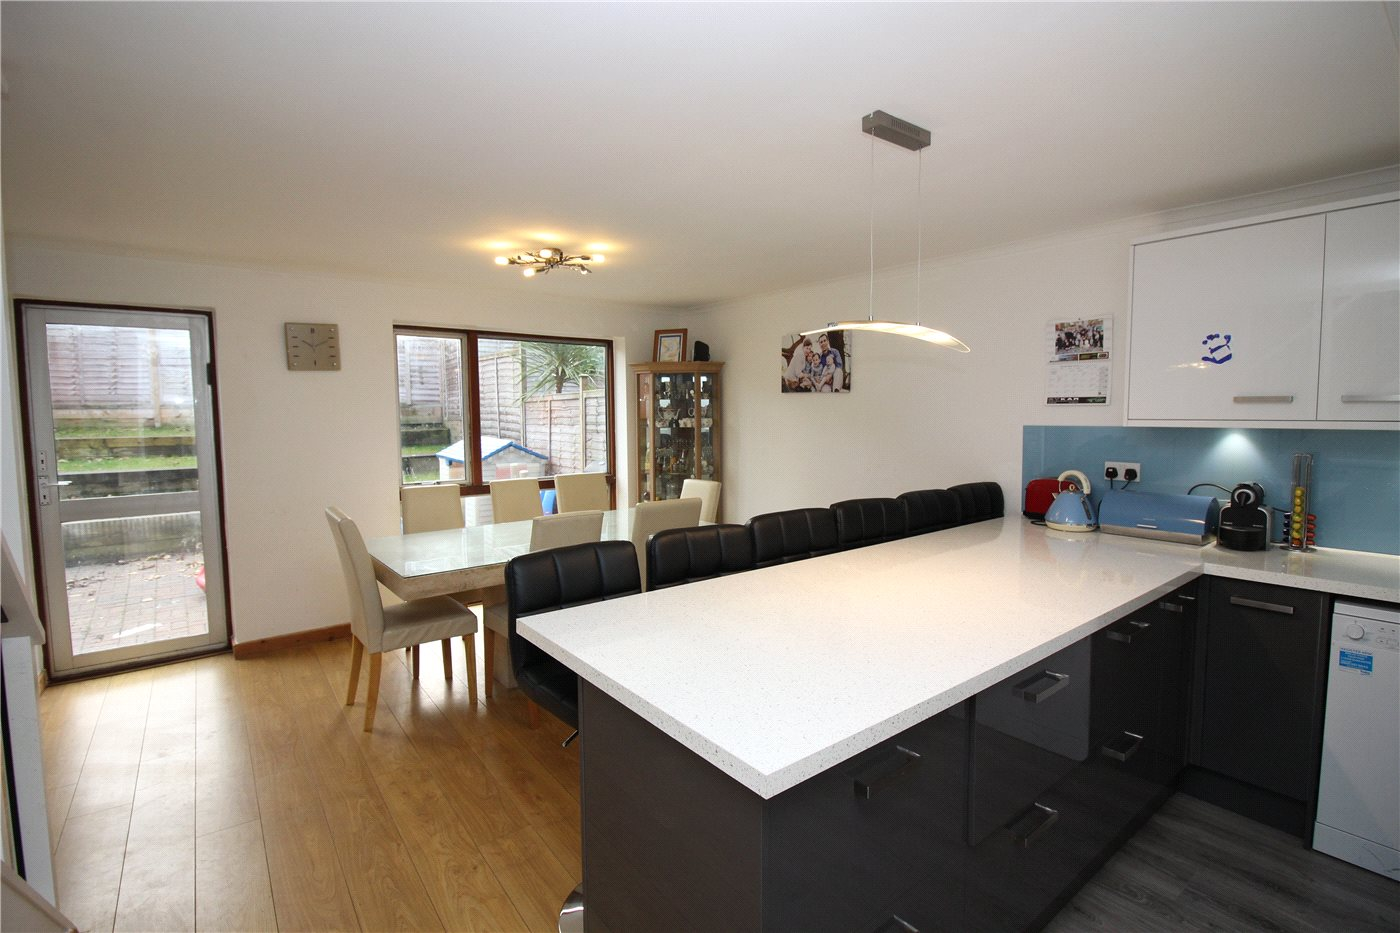 3 Bedrooms Semi Detached House for sale in Wilcox Close, Borehamwood, Hertfordshire, WD6